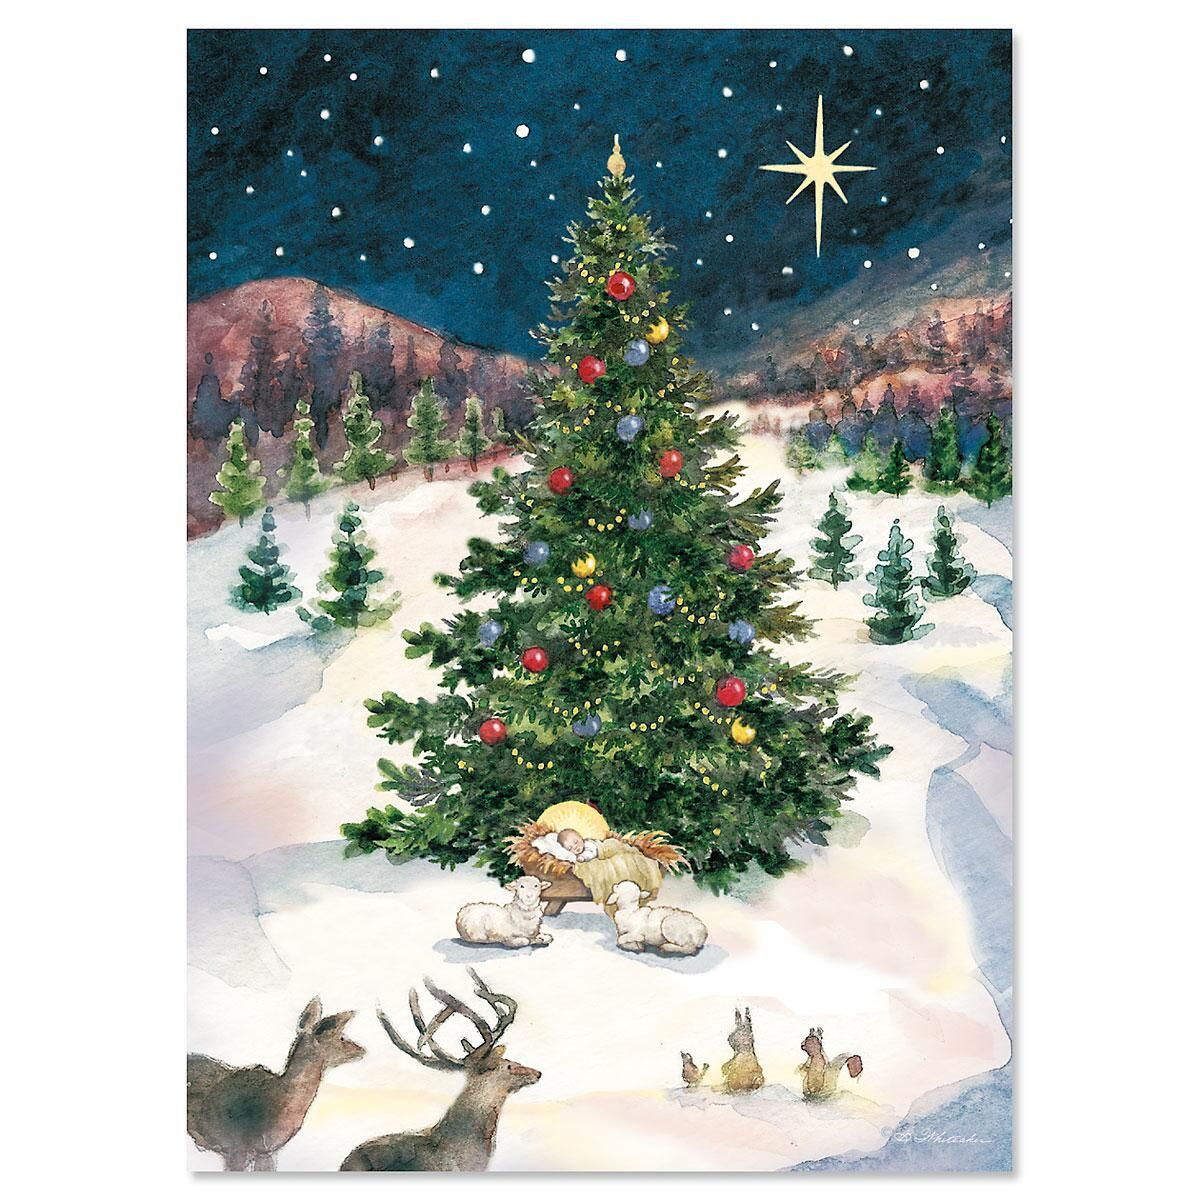 Christmas Tree with Manger Personalized Christmas Cards - Set of 72